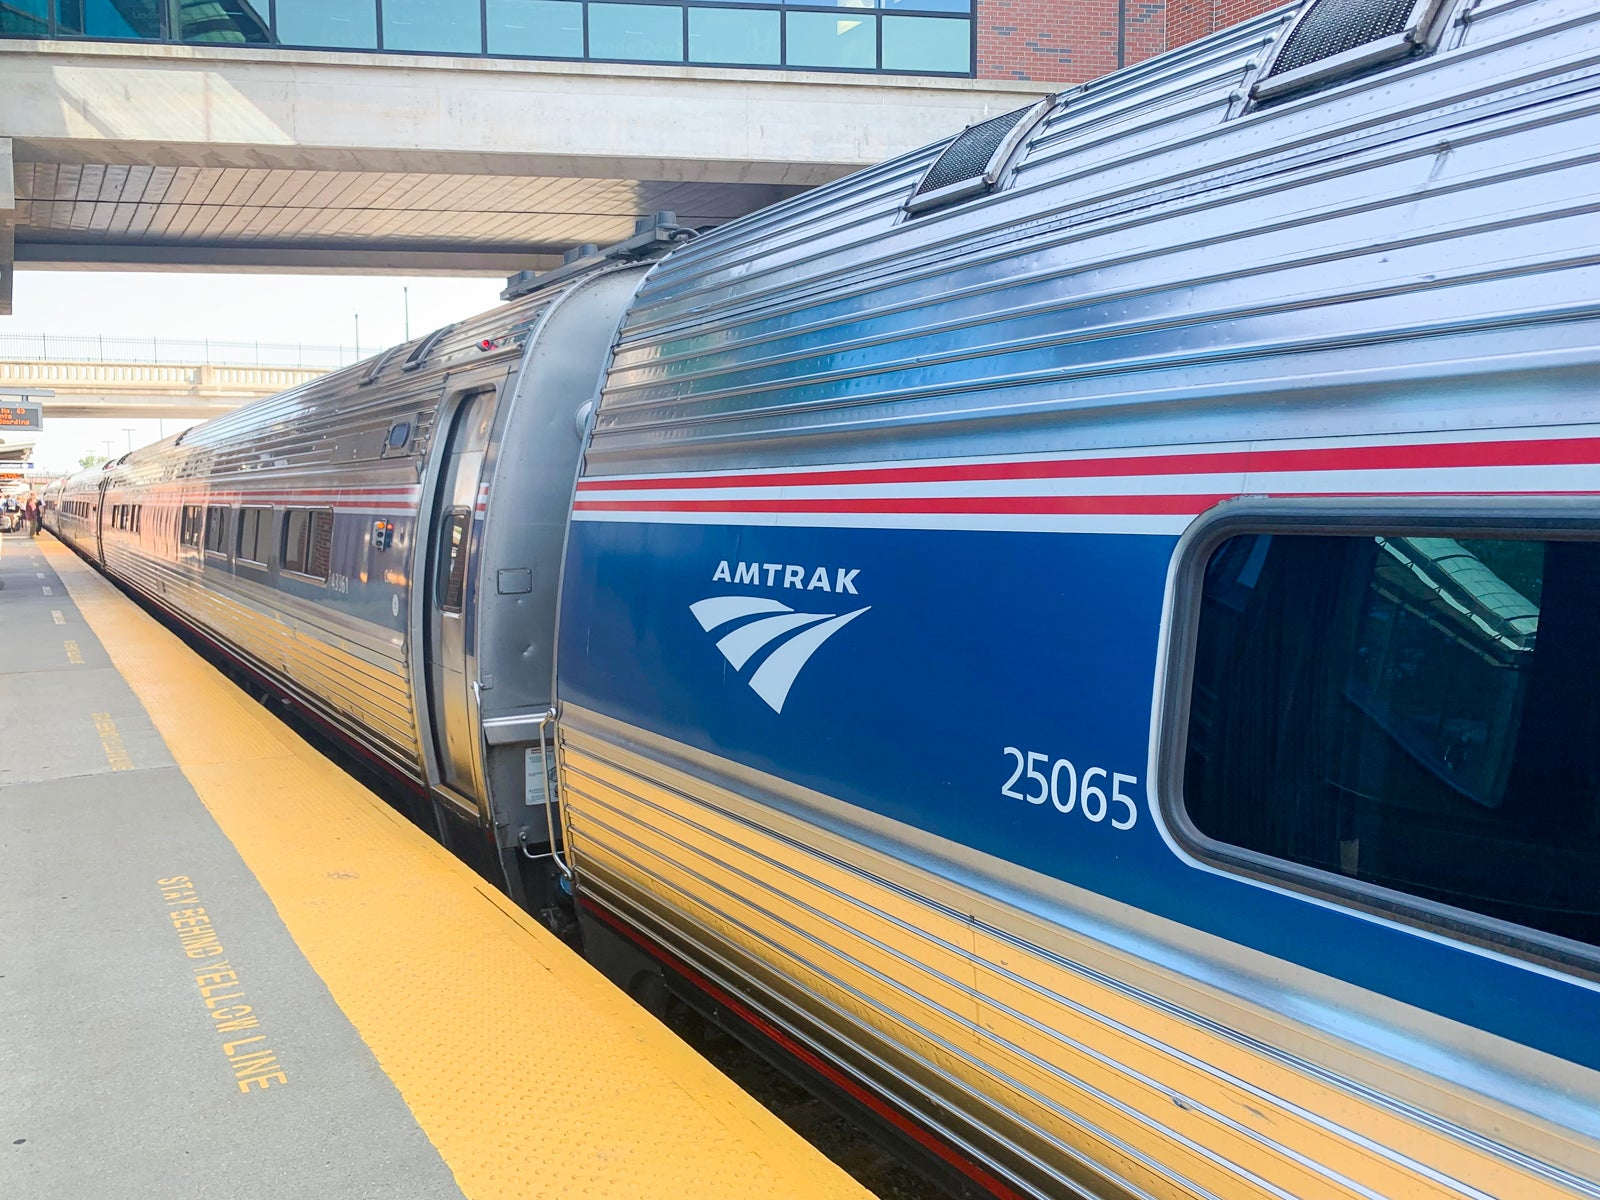 You can now book an overnight private room on Amtrak's Northeast Regional